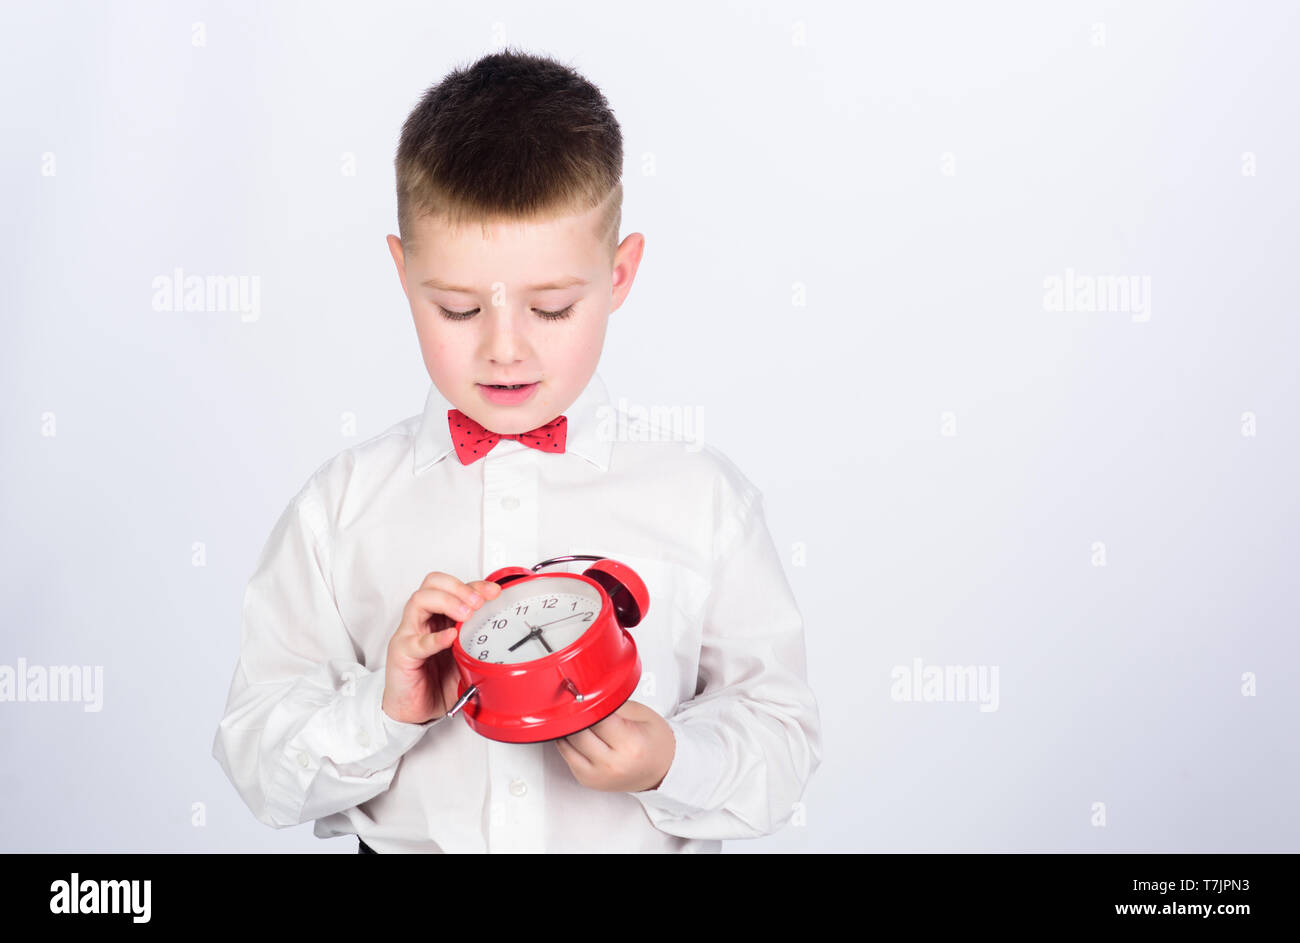 Time management. Morning. little boy with alarm clock. Time to relax. tuxedo kid. Happy childhood. happy child with retro clock in tie. Party time. Businessman. Formal wear. copy space. Billionaire. - Stock Image